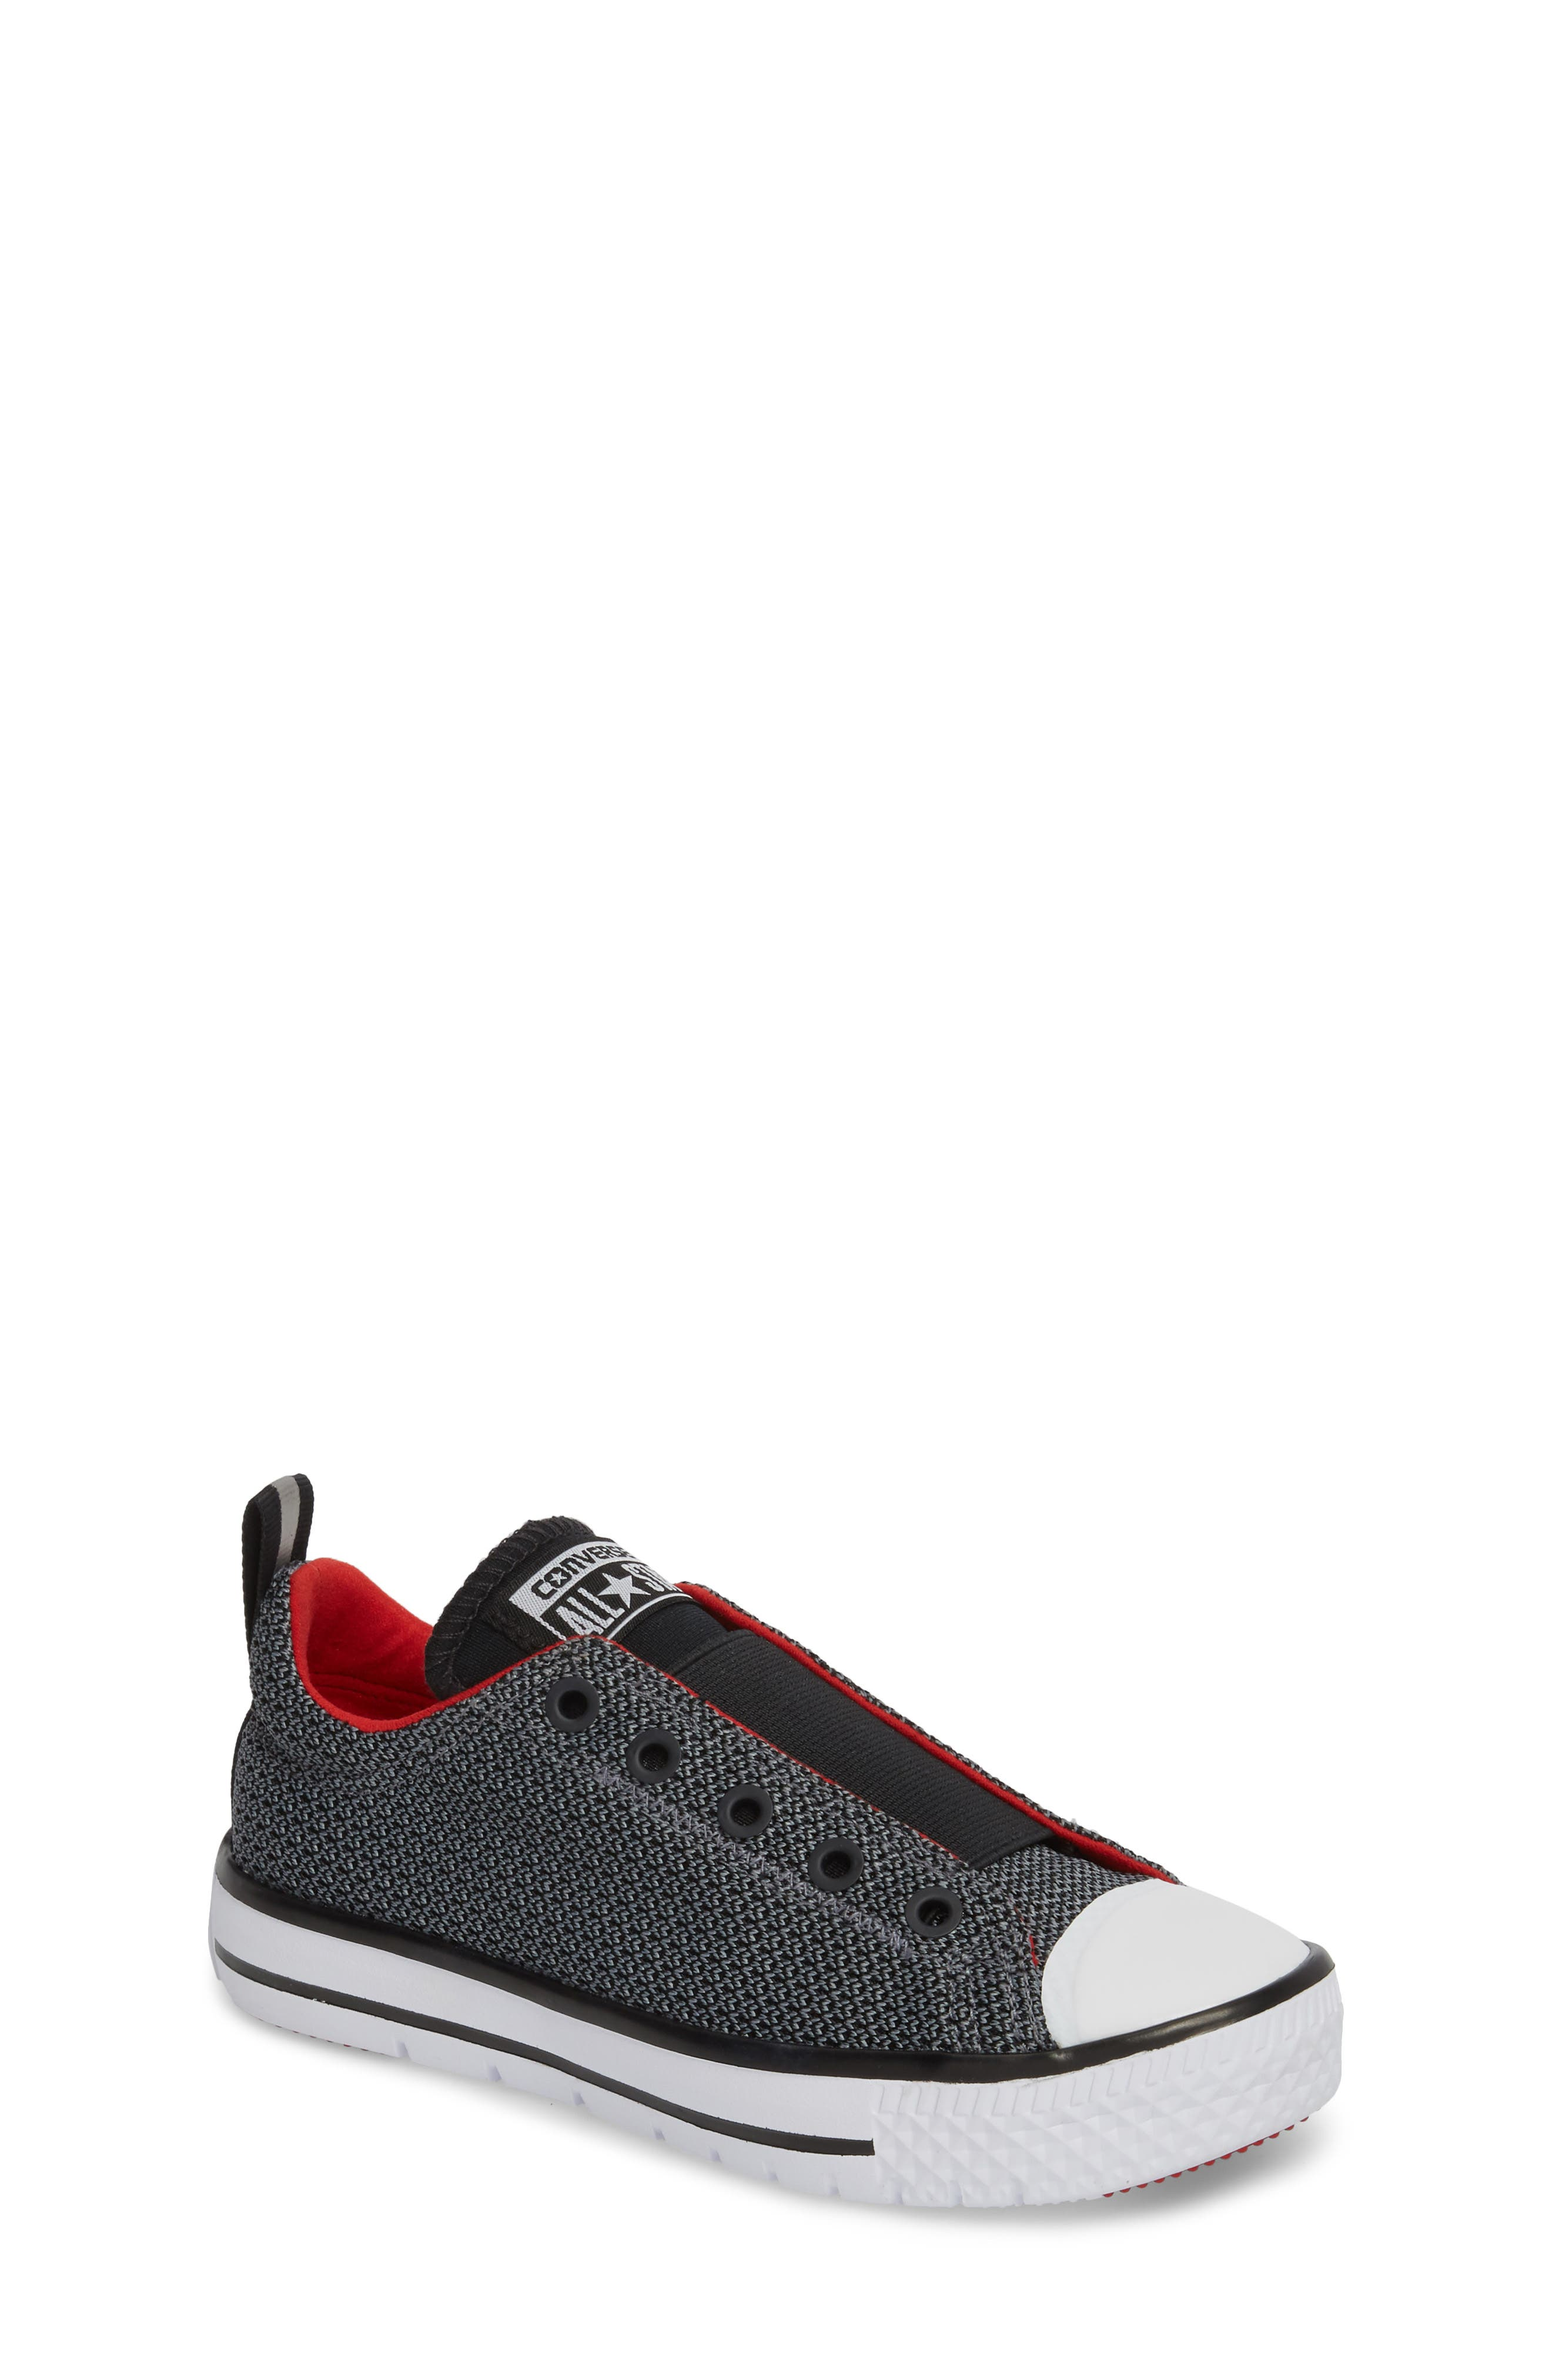 Chuck Taylor<sup>®</sup> All Star<sup>®</sup> Hyper Lite Ox Slip-On Sneaker,                             Main thumbnail 1, color,                             039